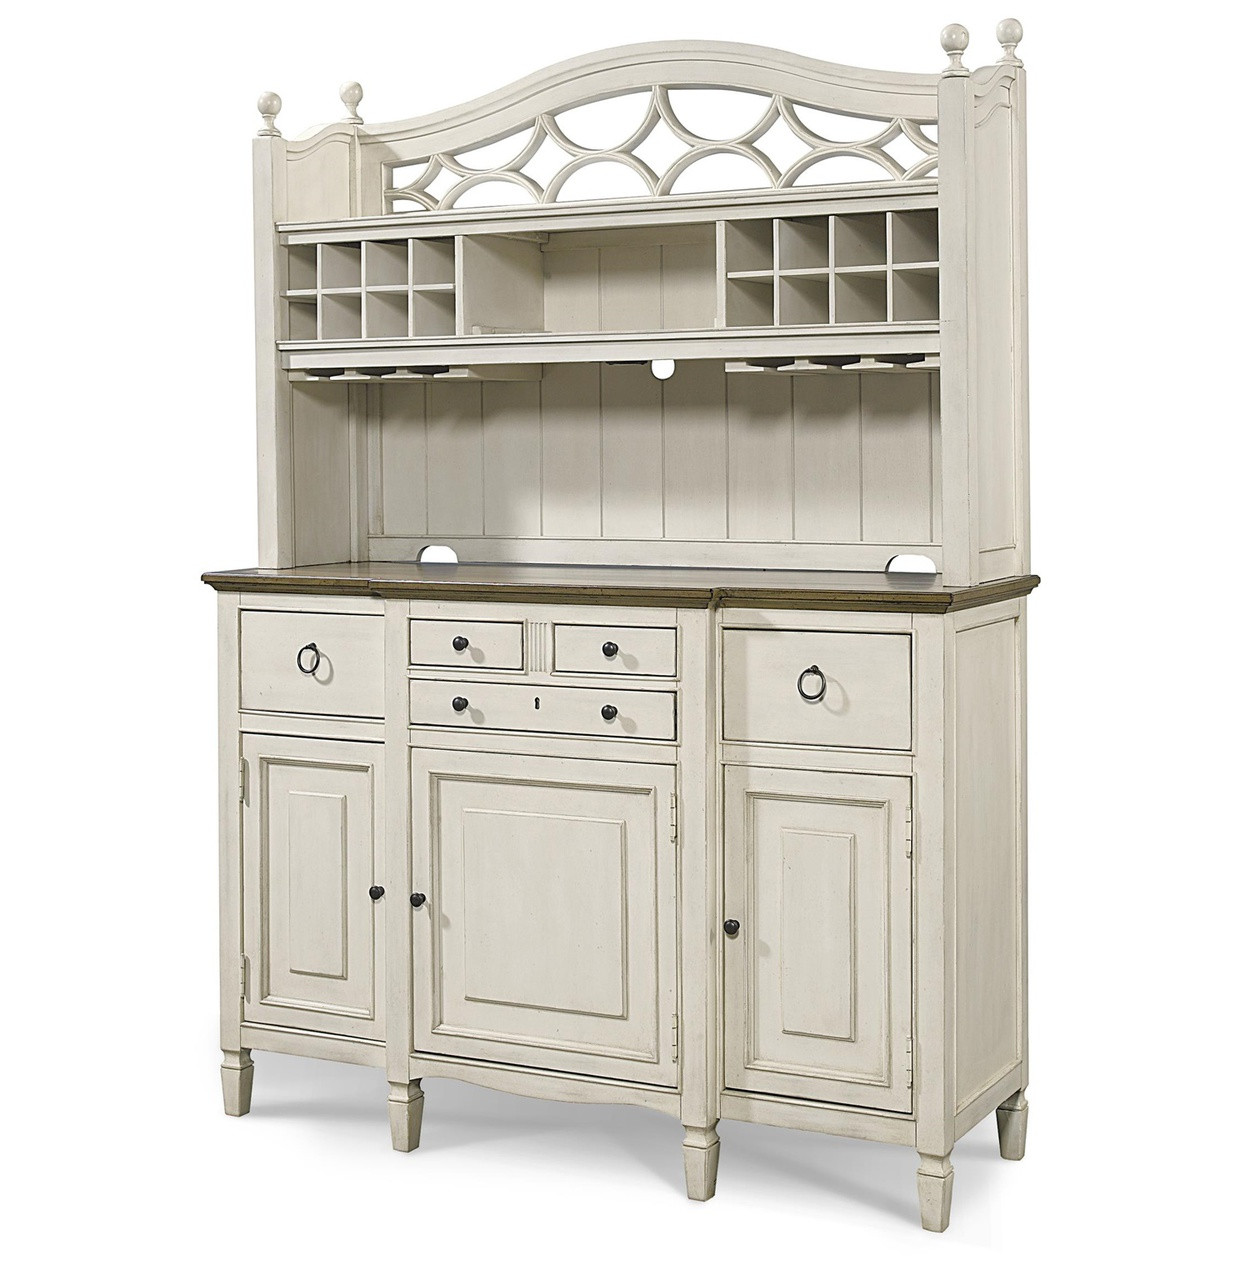 Wooden Kitchen Hutch ~ Country chic maple wood white kitchen buffet with bar